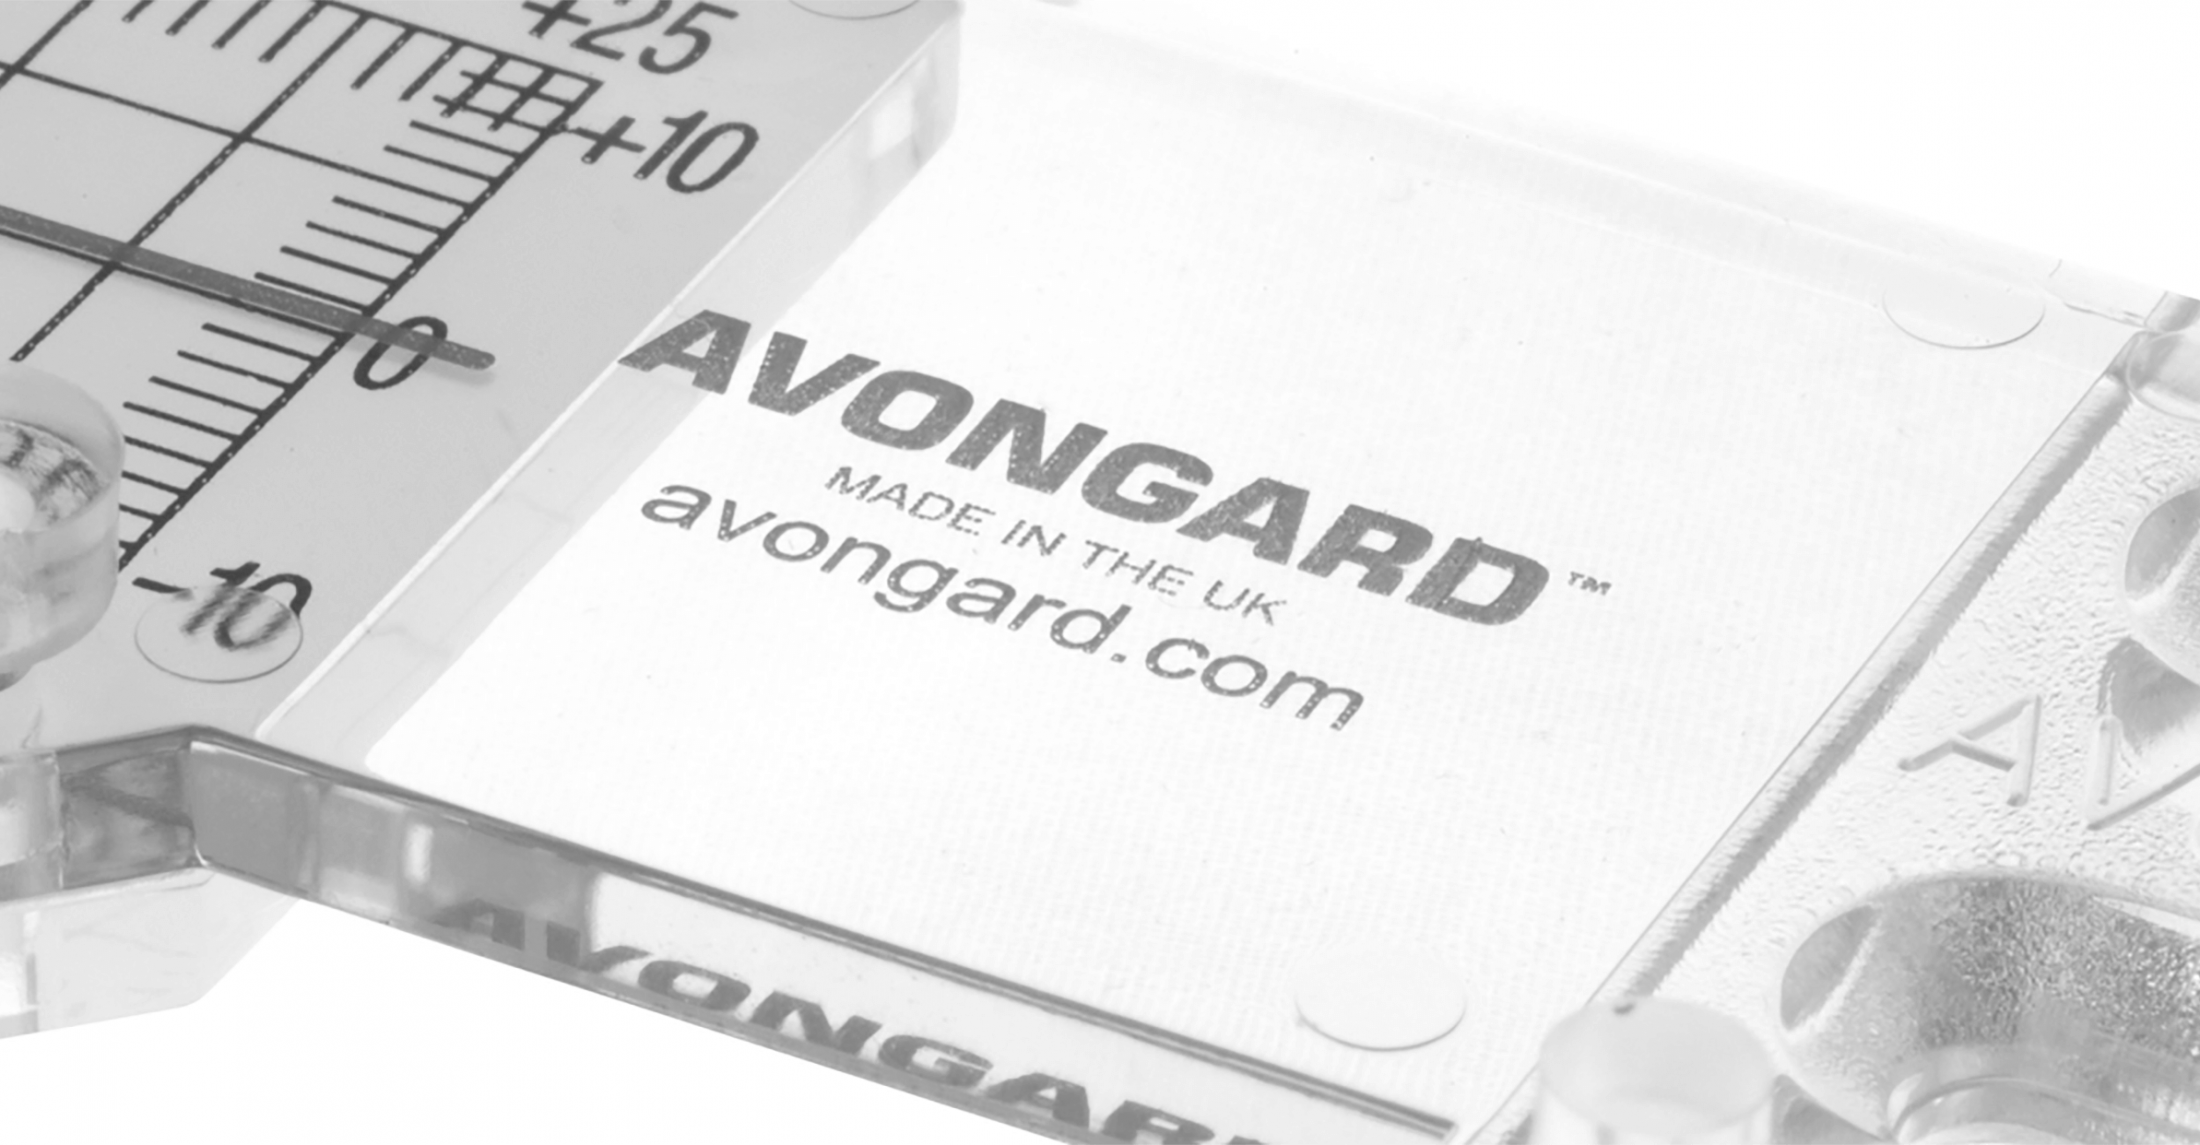 Avongard is the original crack monitoring system